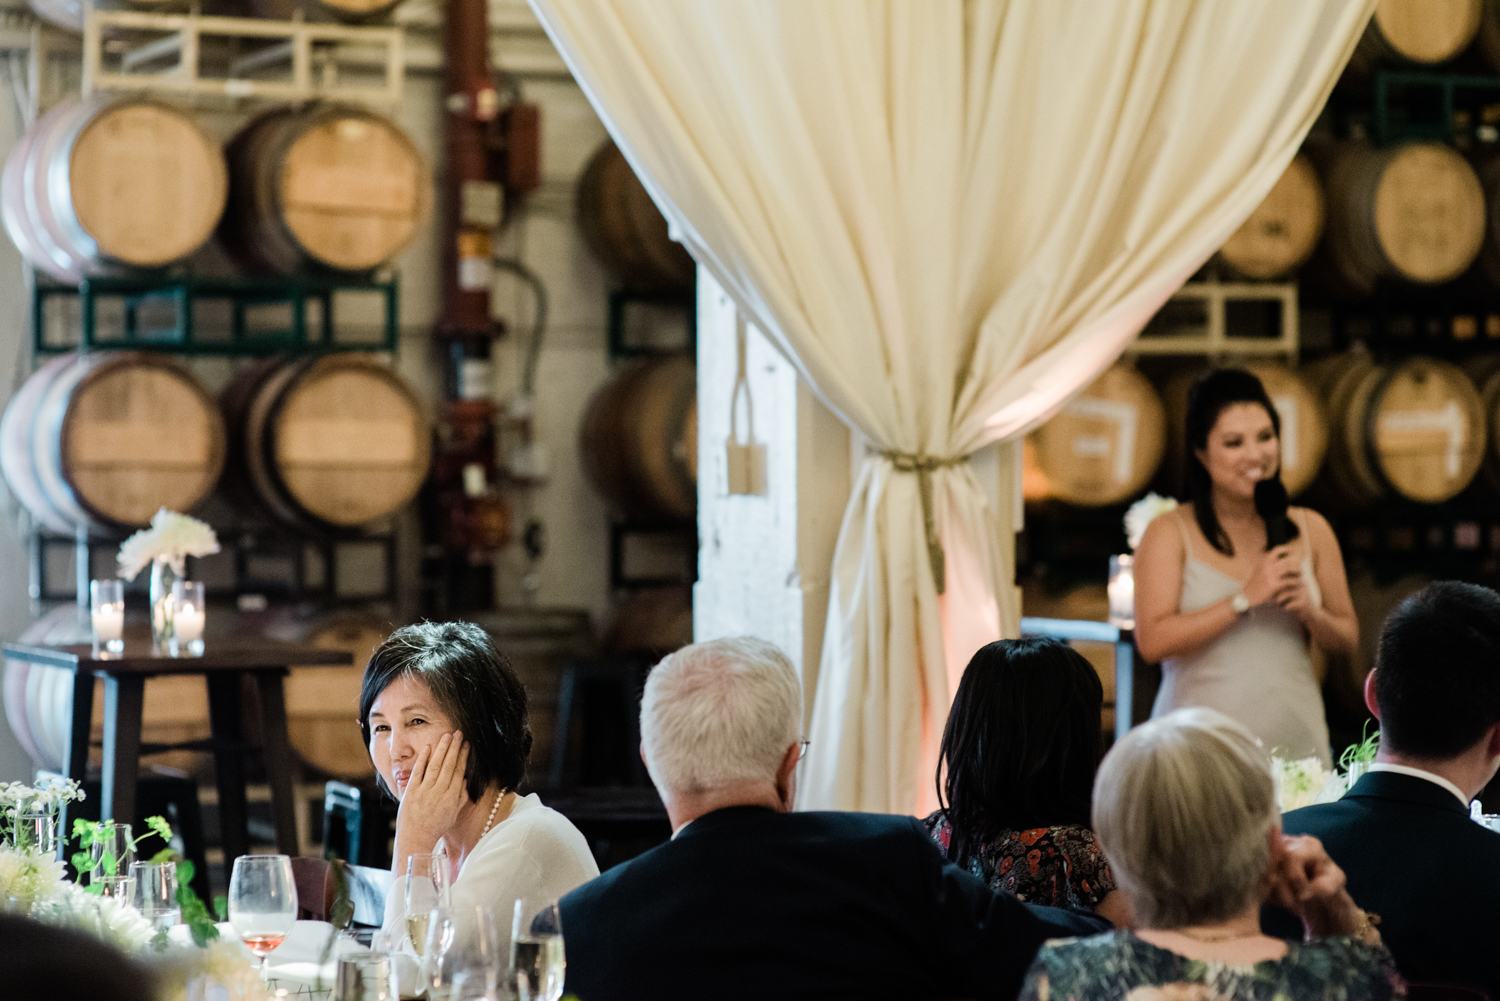 Potrero_Hill_Wine_Works_Wedding_ChristinaRichards_090.jpg